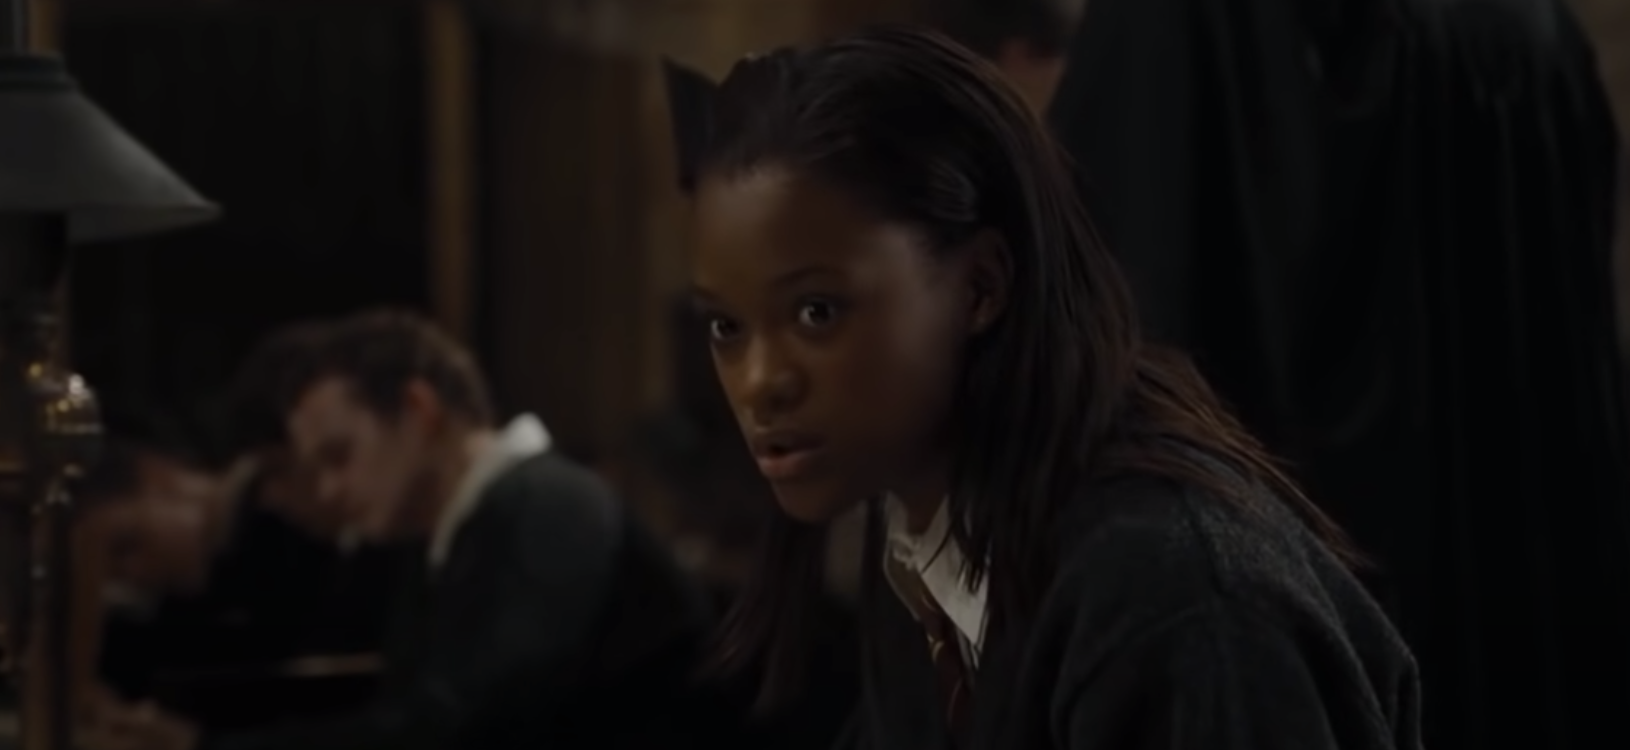 Angelina reacting to Fred in the great hall